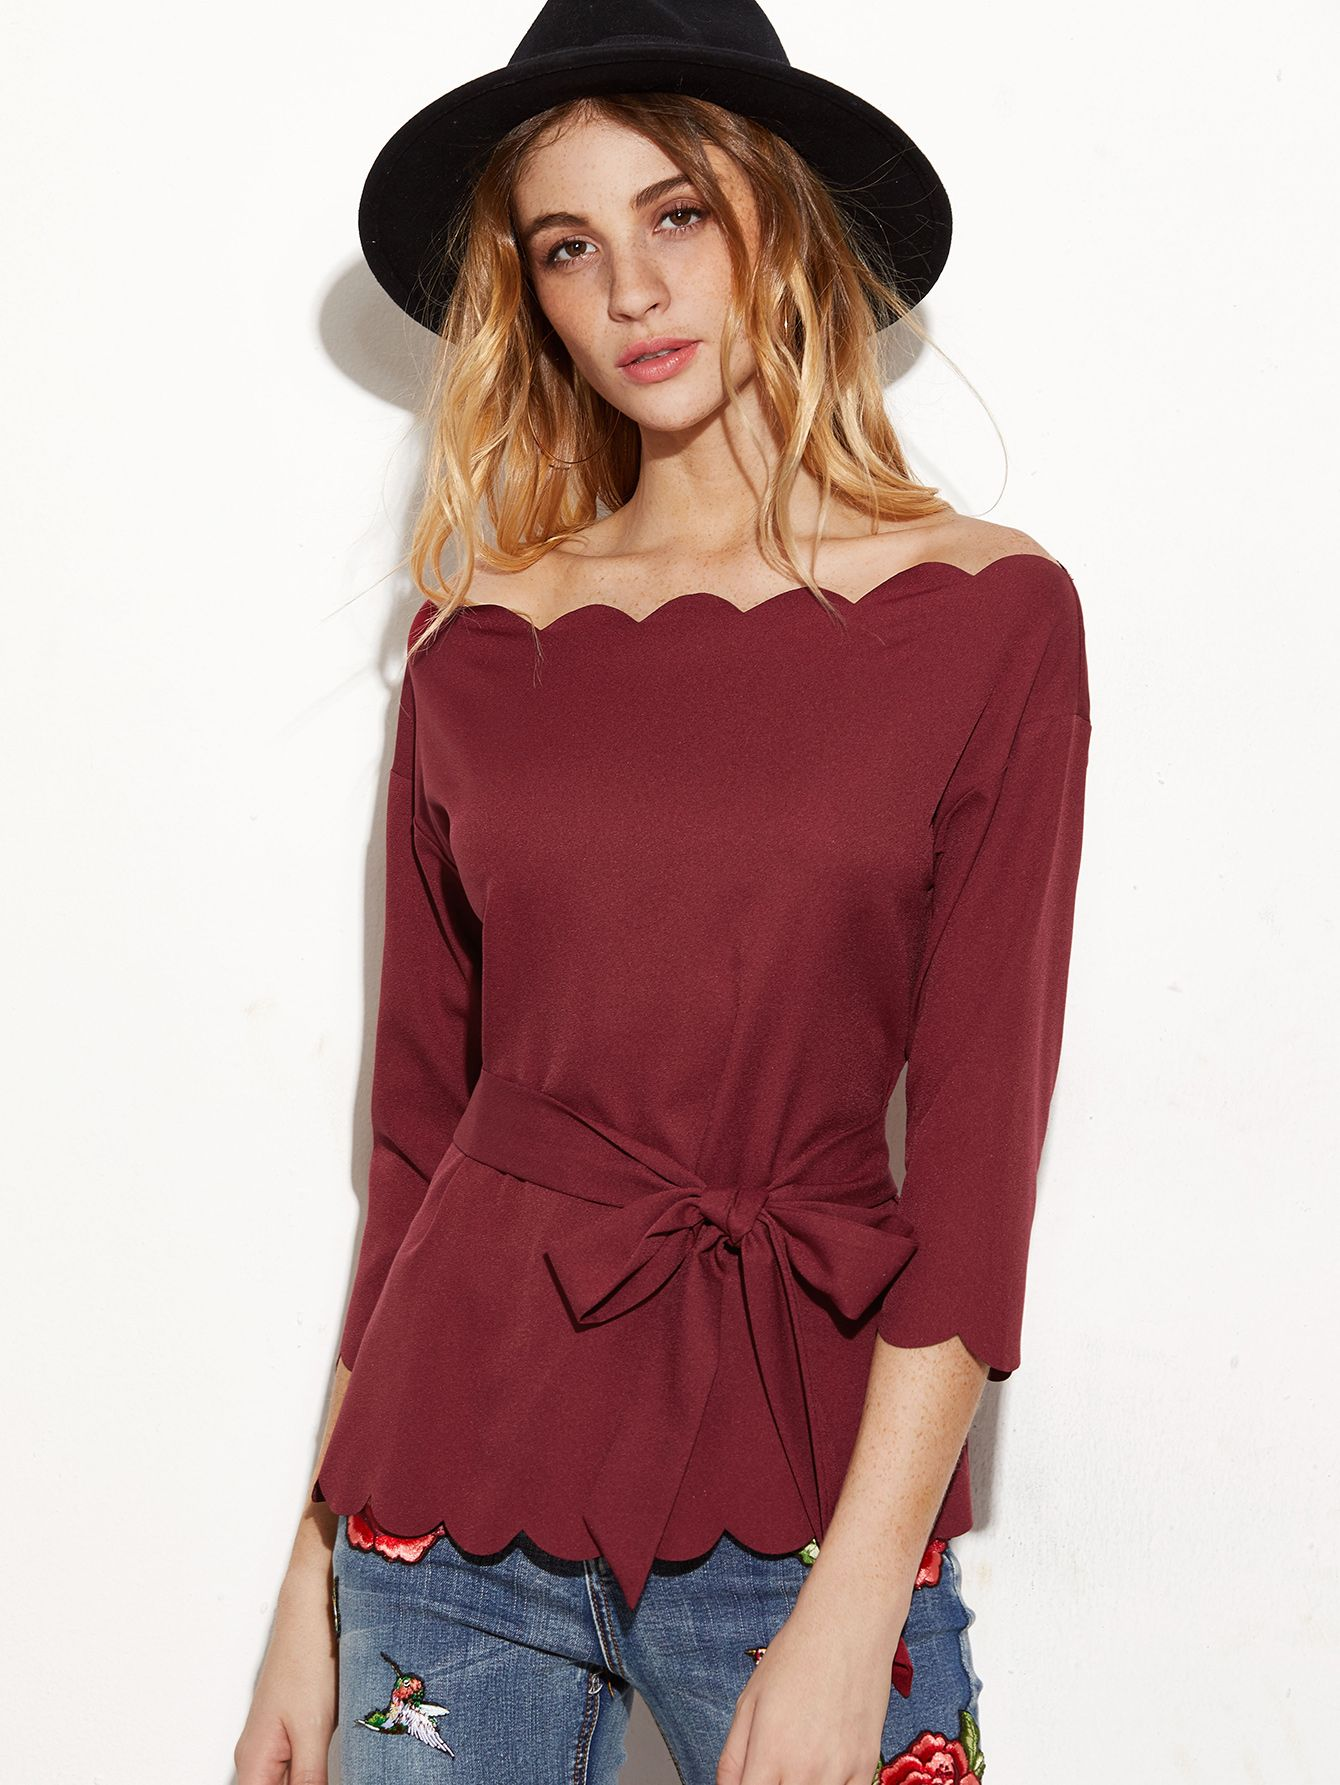 0125b9662663 Shop Burgundy Belted Scallop Off The Shoulder Top online. SheIn offers  Burgundy Belted Scallop Off The Shoulder Top   more to fit your fashionable  needs.